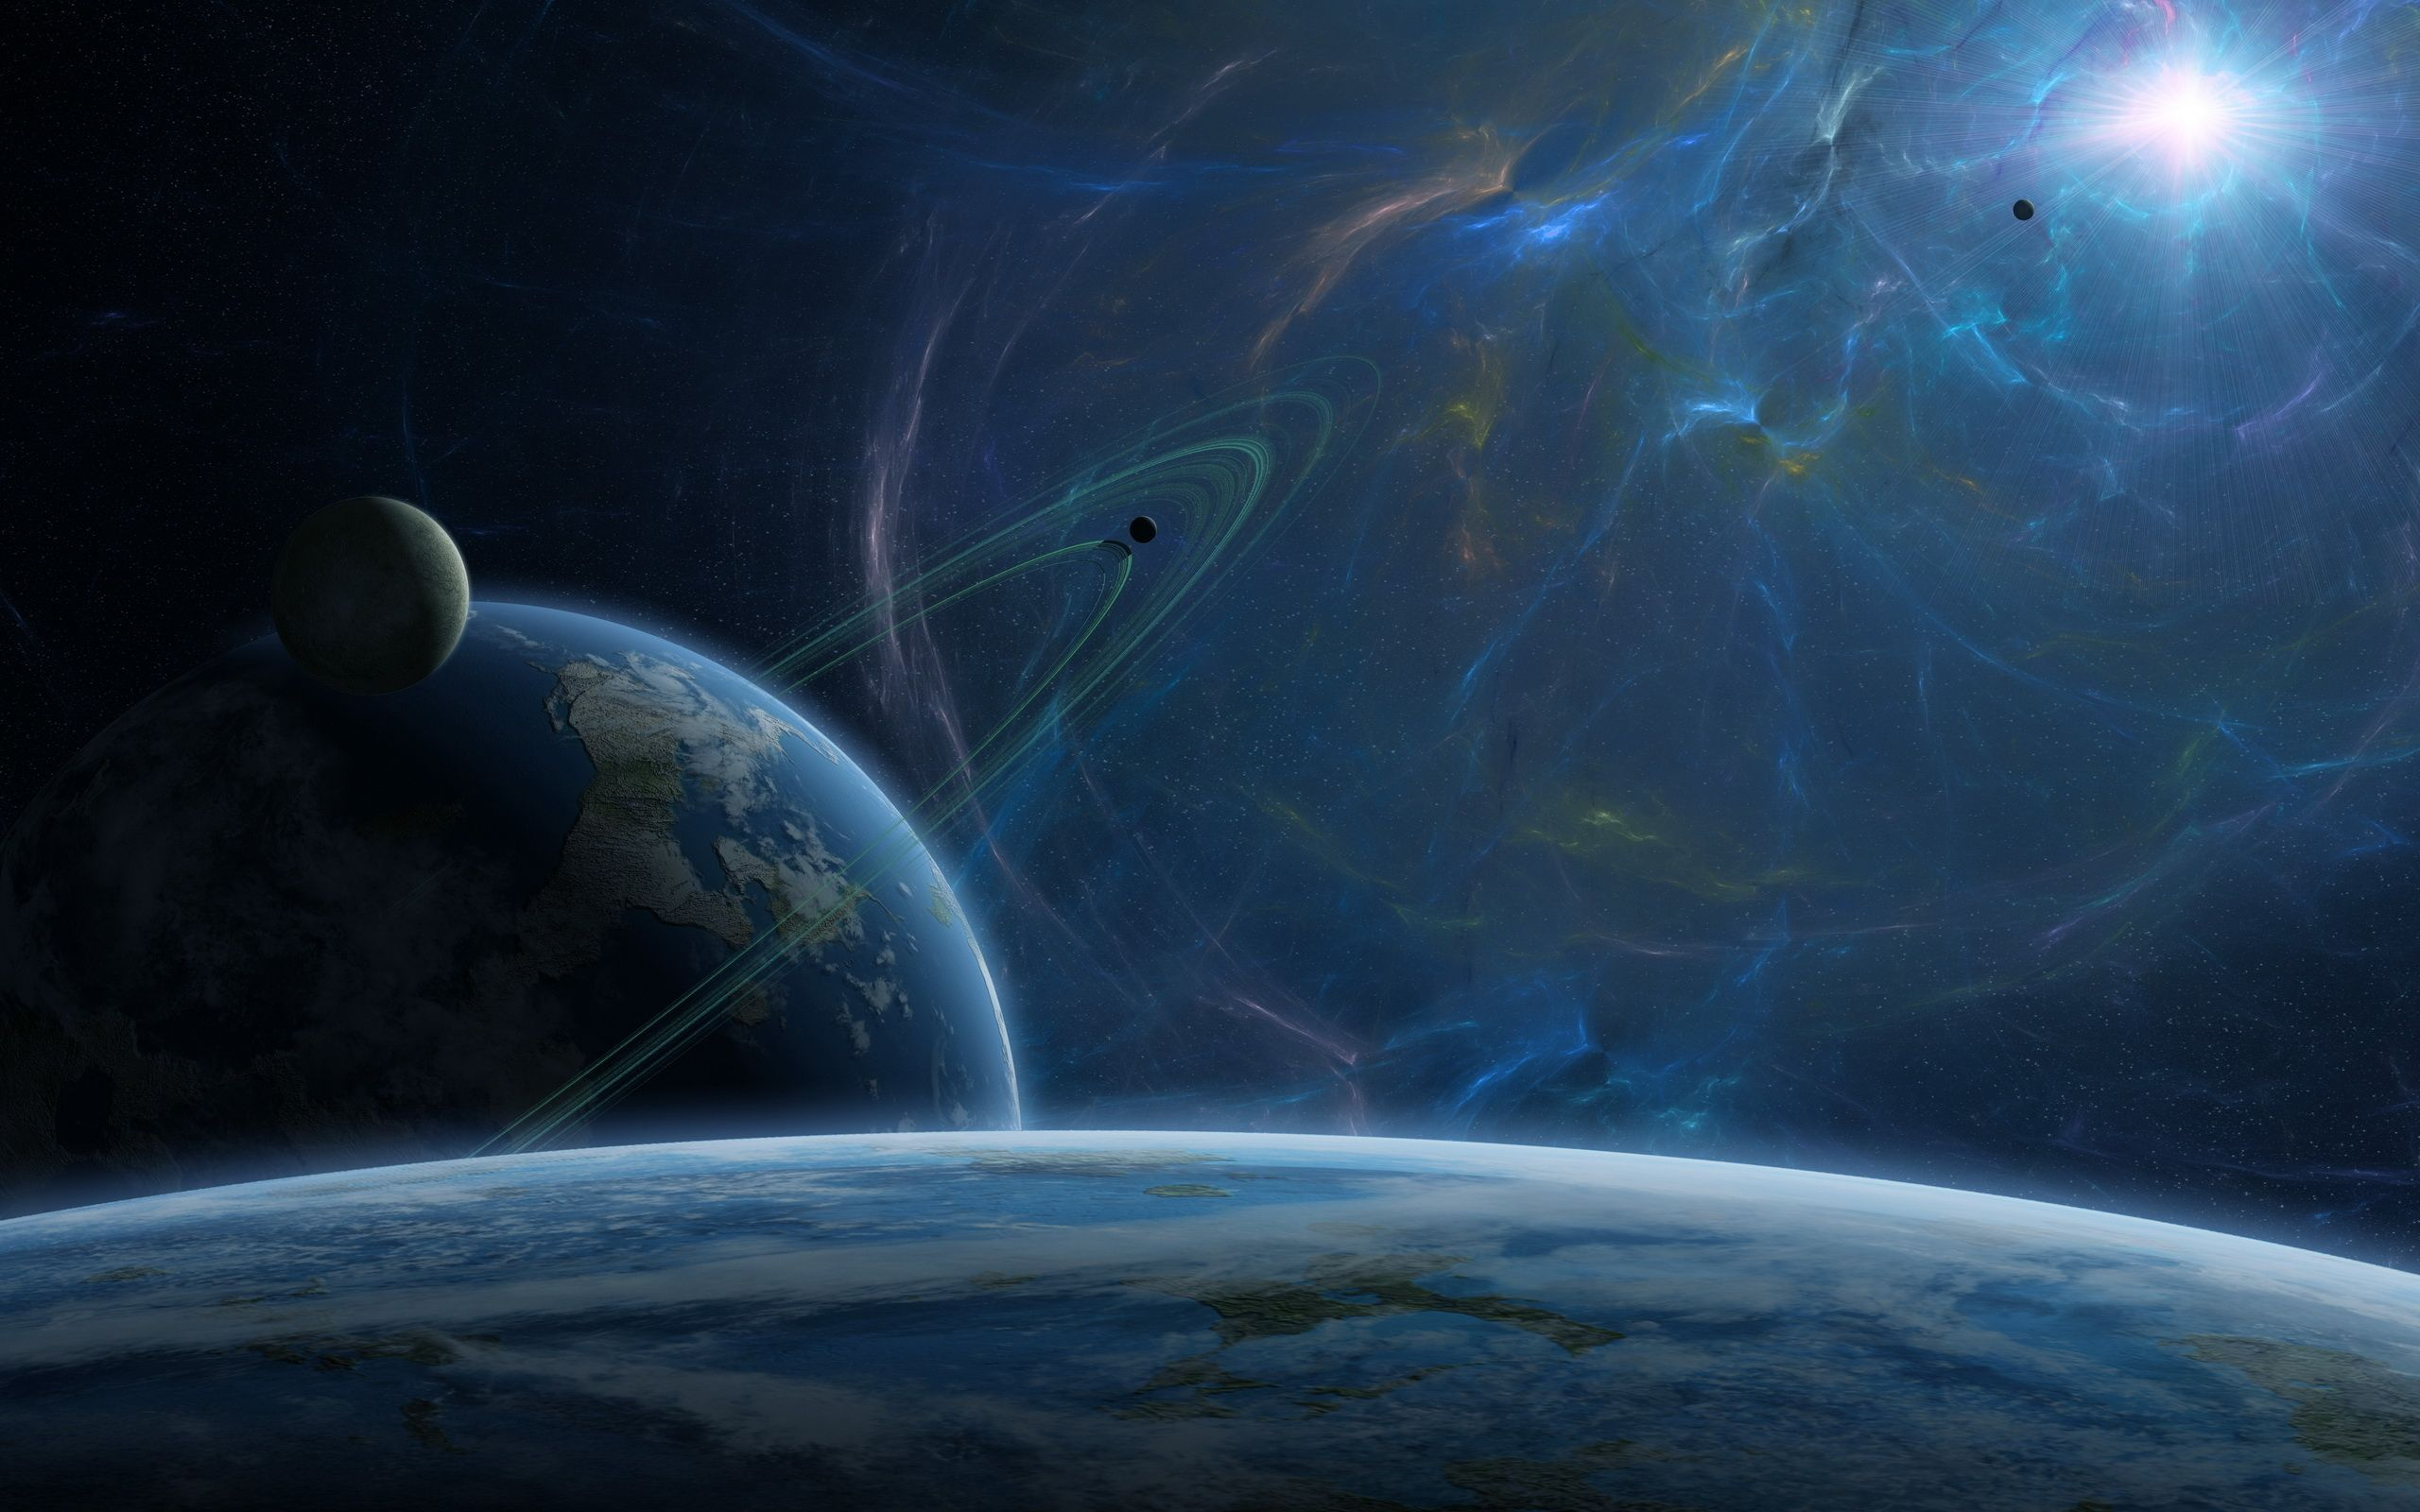 Free Comic Book Day Adventures Outer space wallpaper